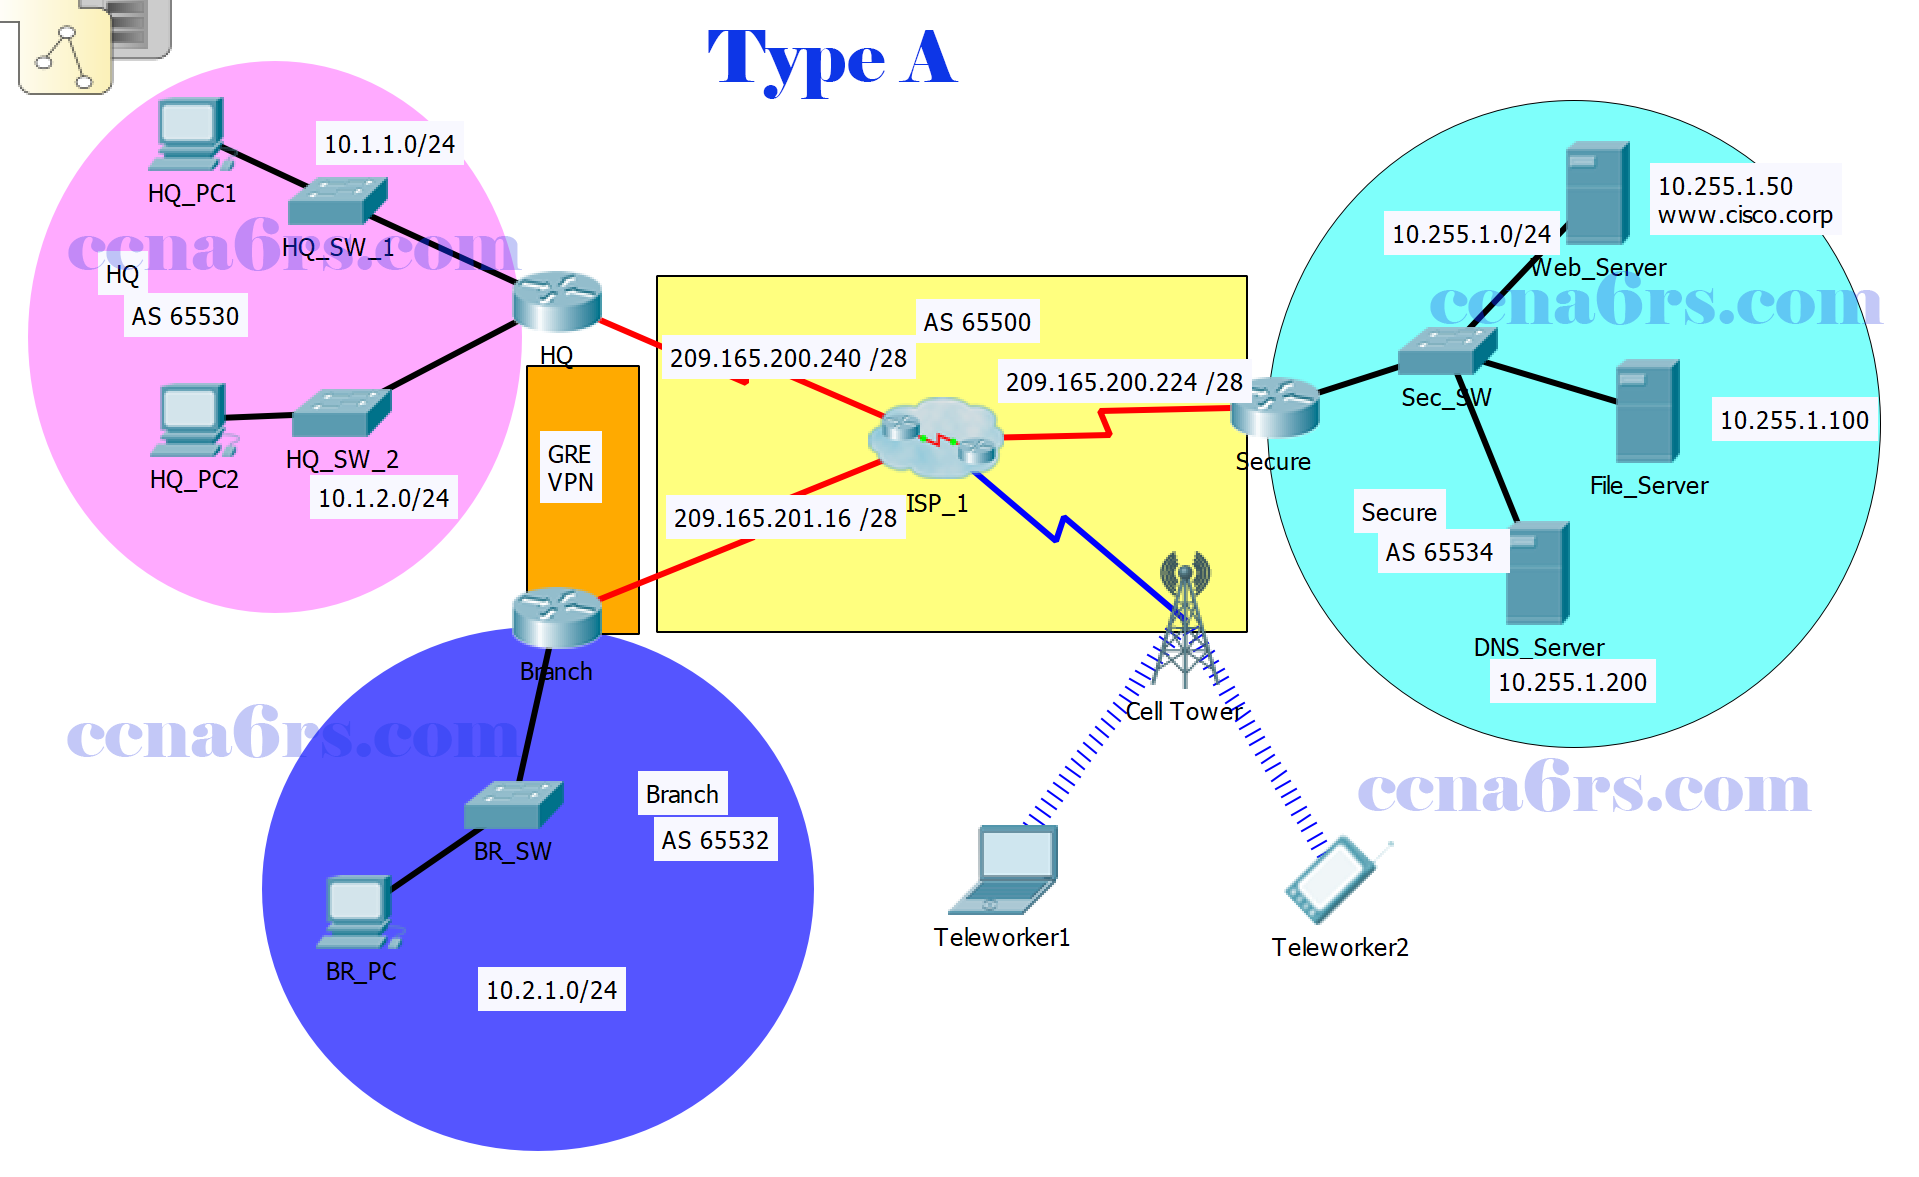 Chapter 3 Packet Tracer Skills Assessment - PT Type A